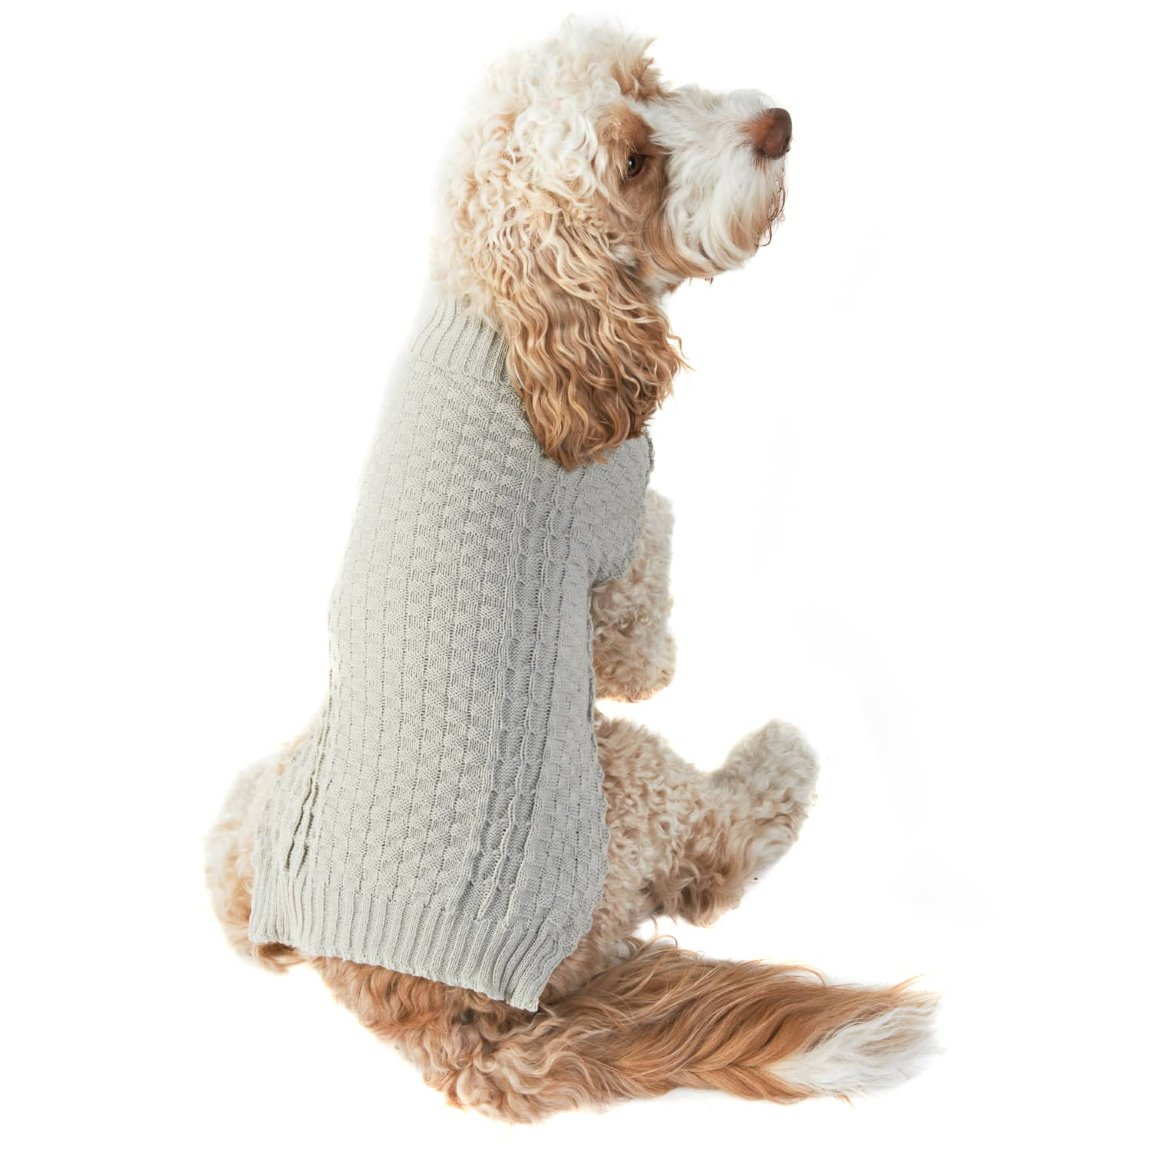 Doggy Jumper - Medium - X-Large - Cable Knit